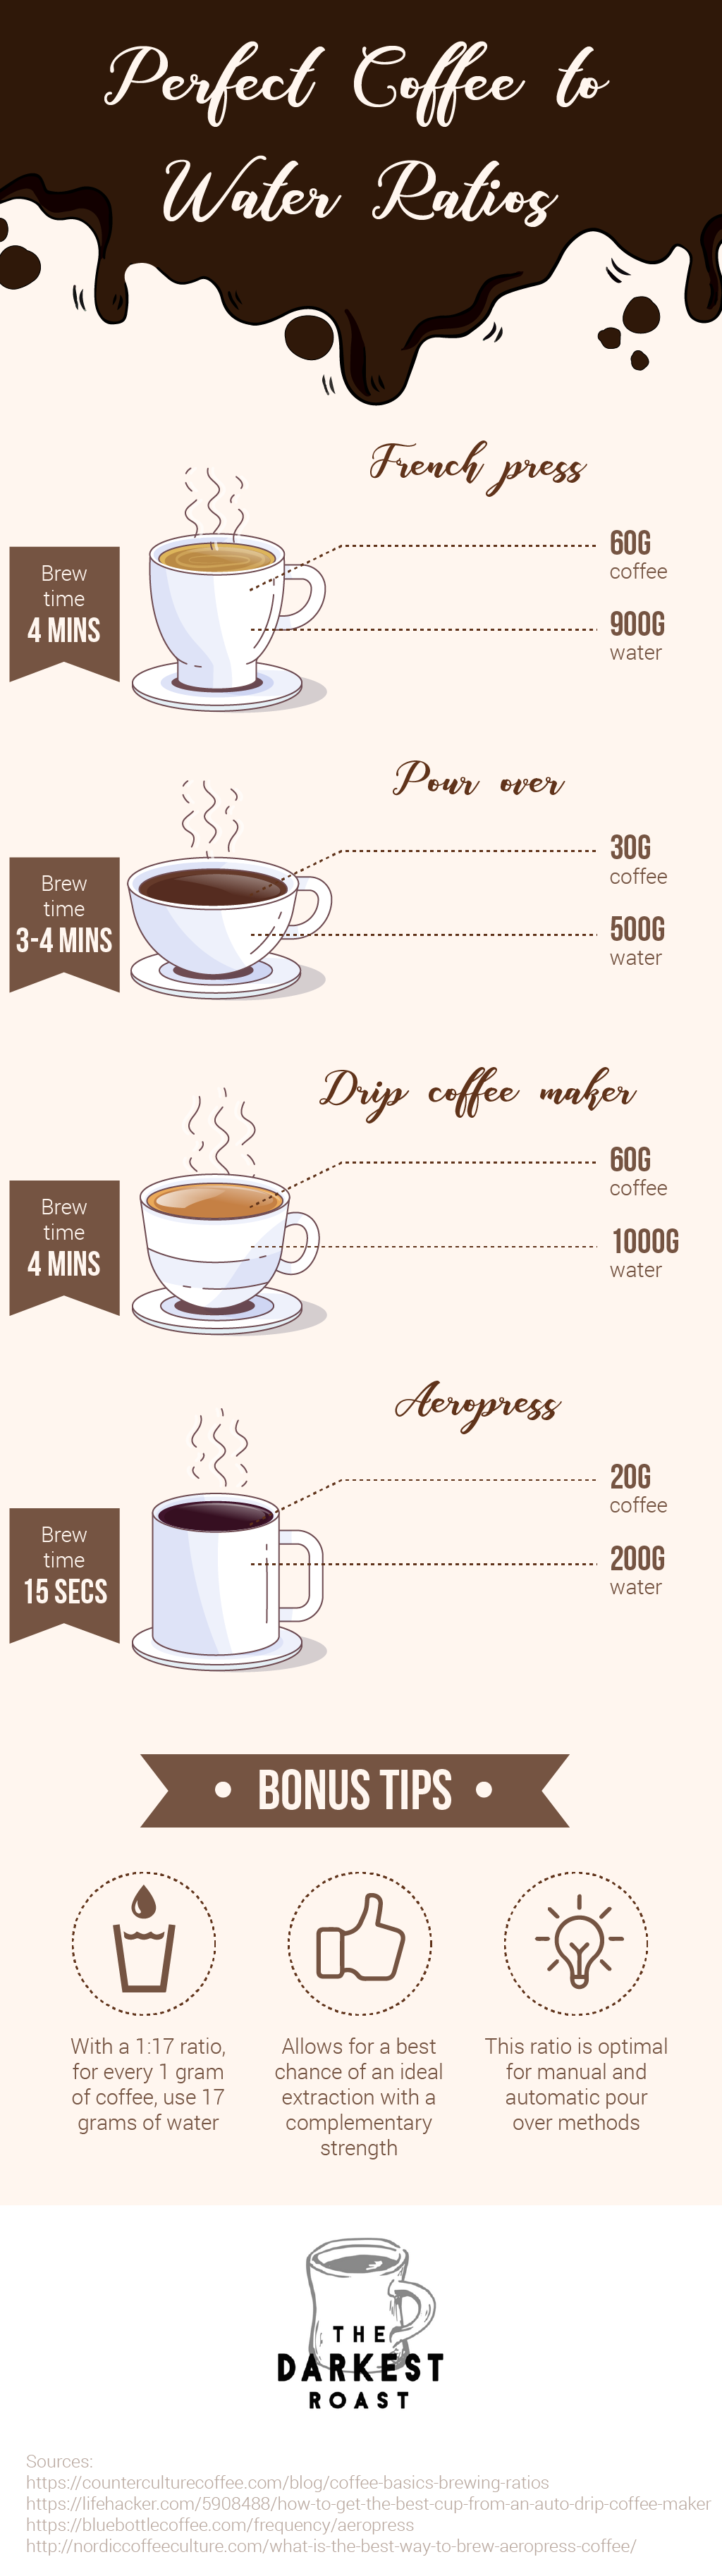 The Perfect Coffee to Water Ratio Coffee to water ratio